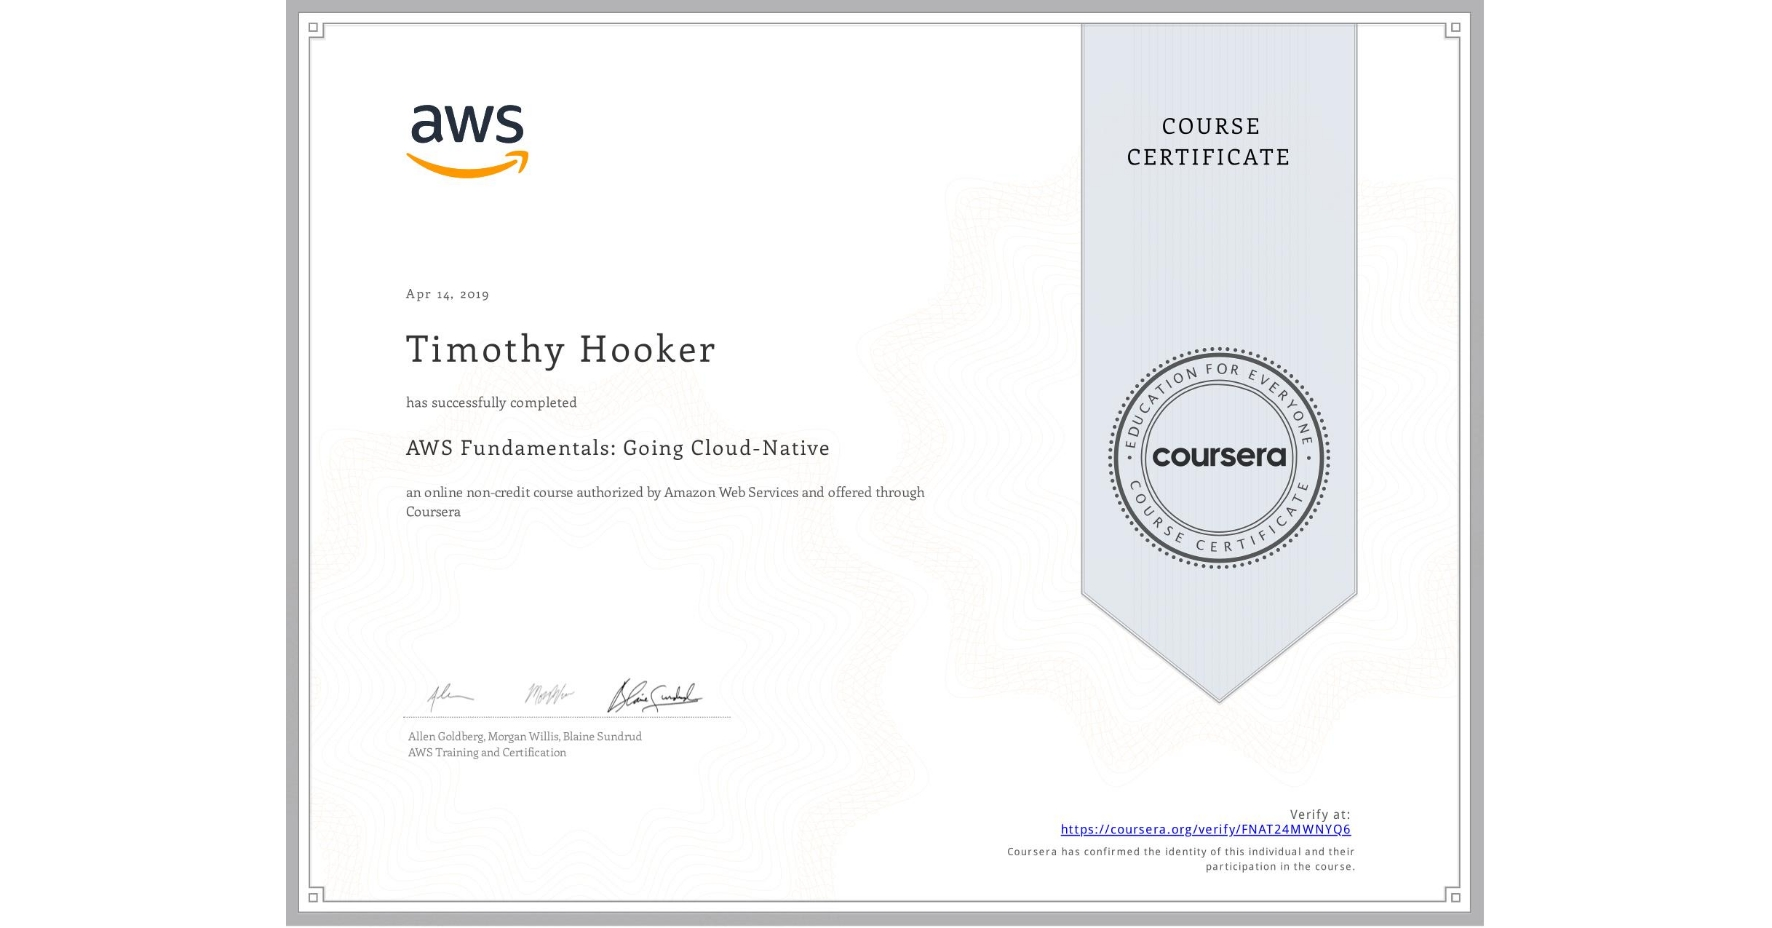 View certificate for Timothy Hooker, AWS Fundamentals: Going Cloud-Native, an online non-credit course authorized by Amazon Web Services and offered through Coursera